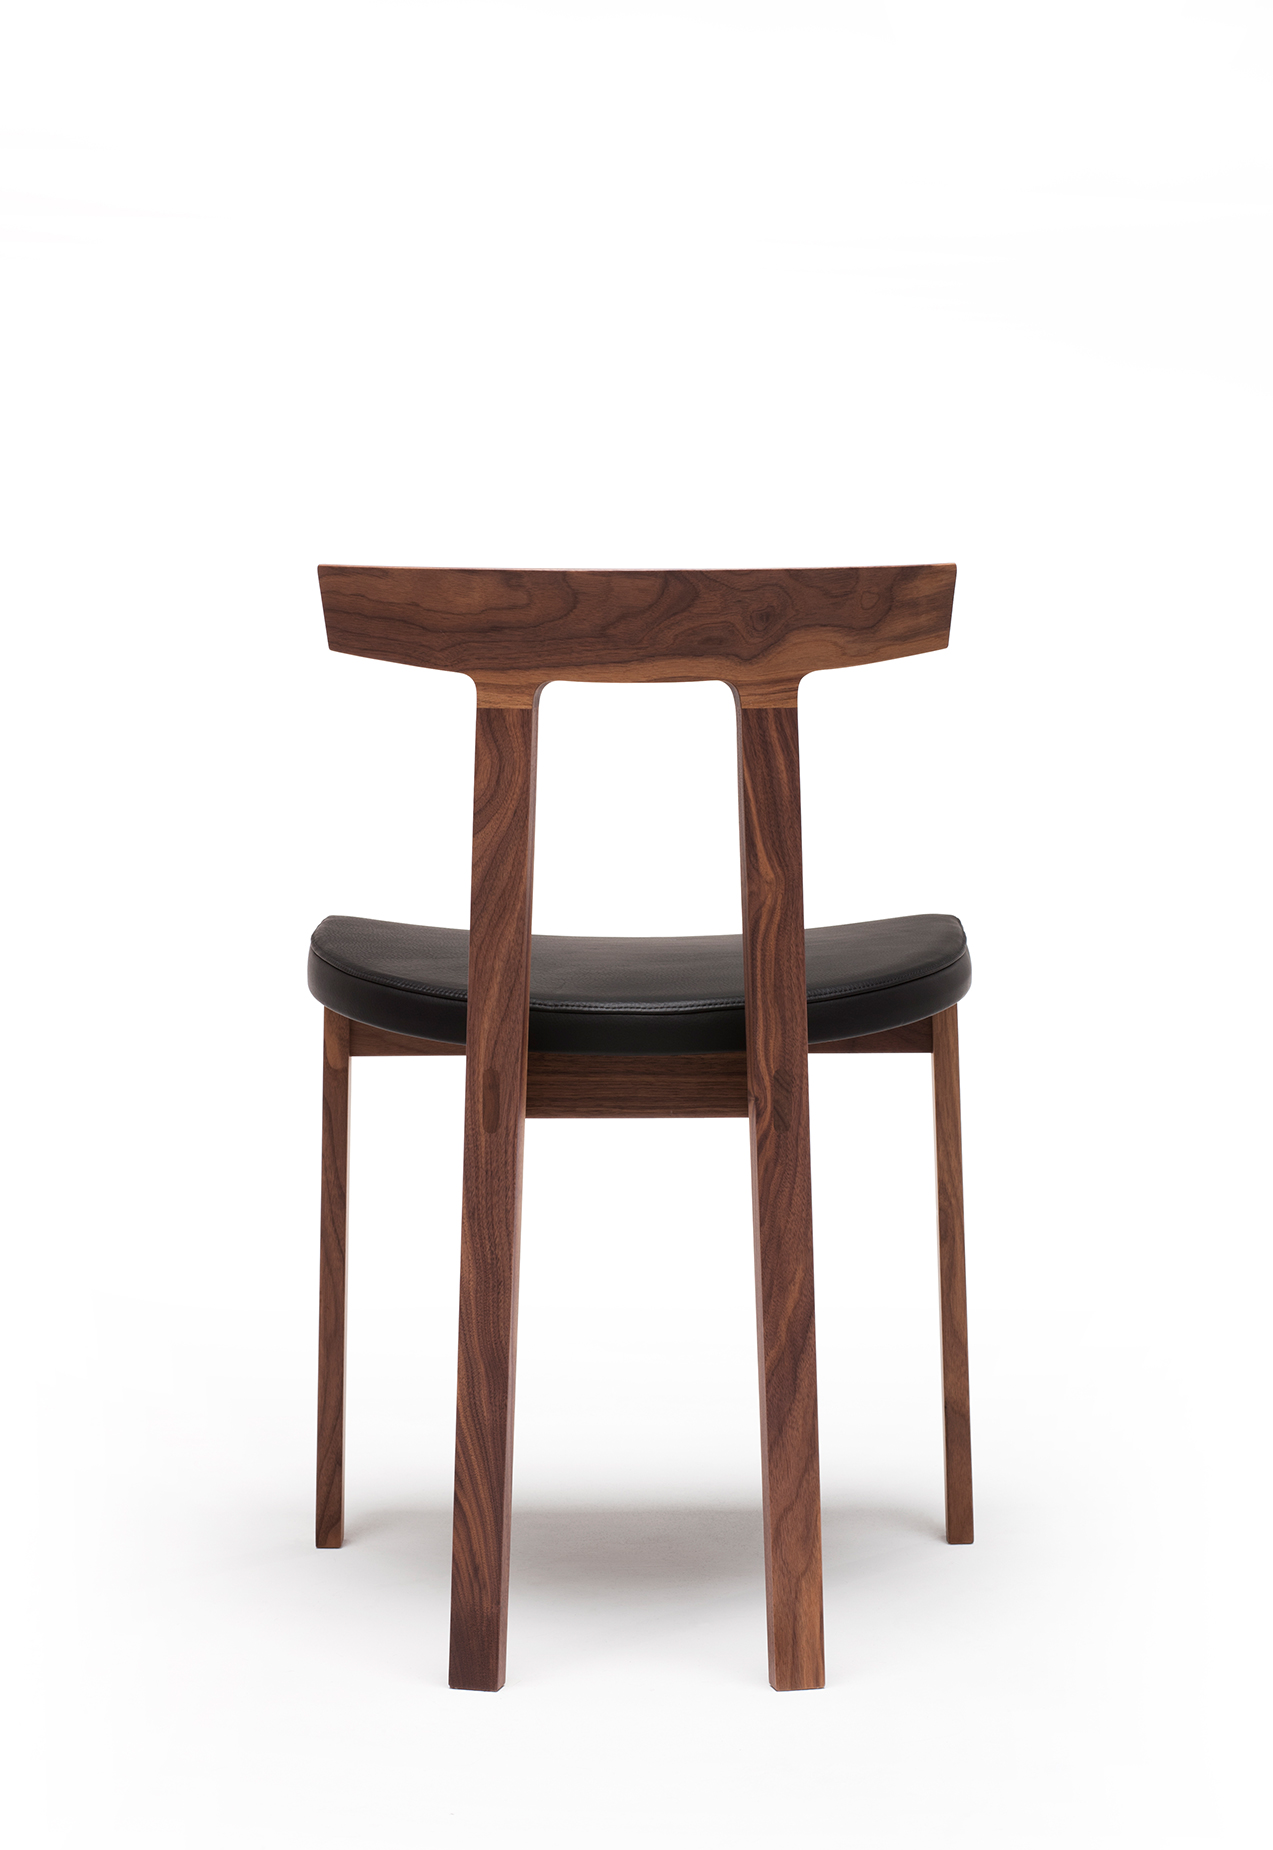 Torii Chair in walnut, black leather